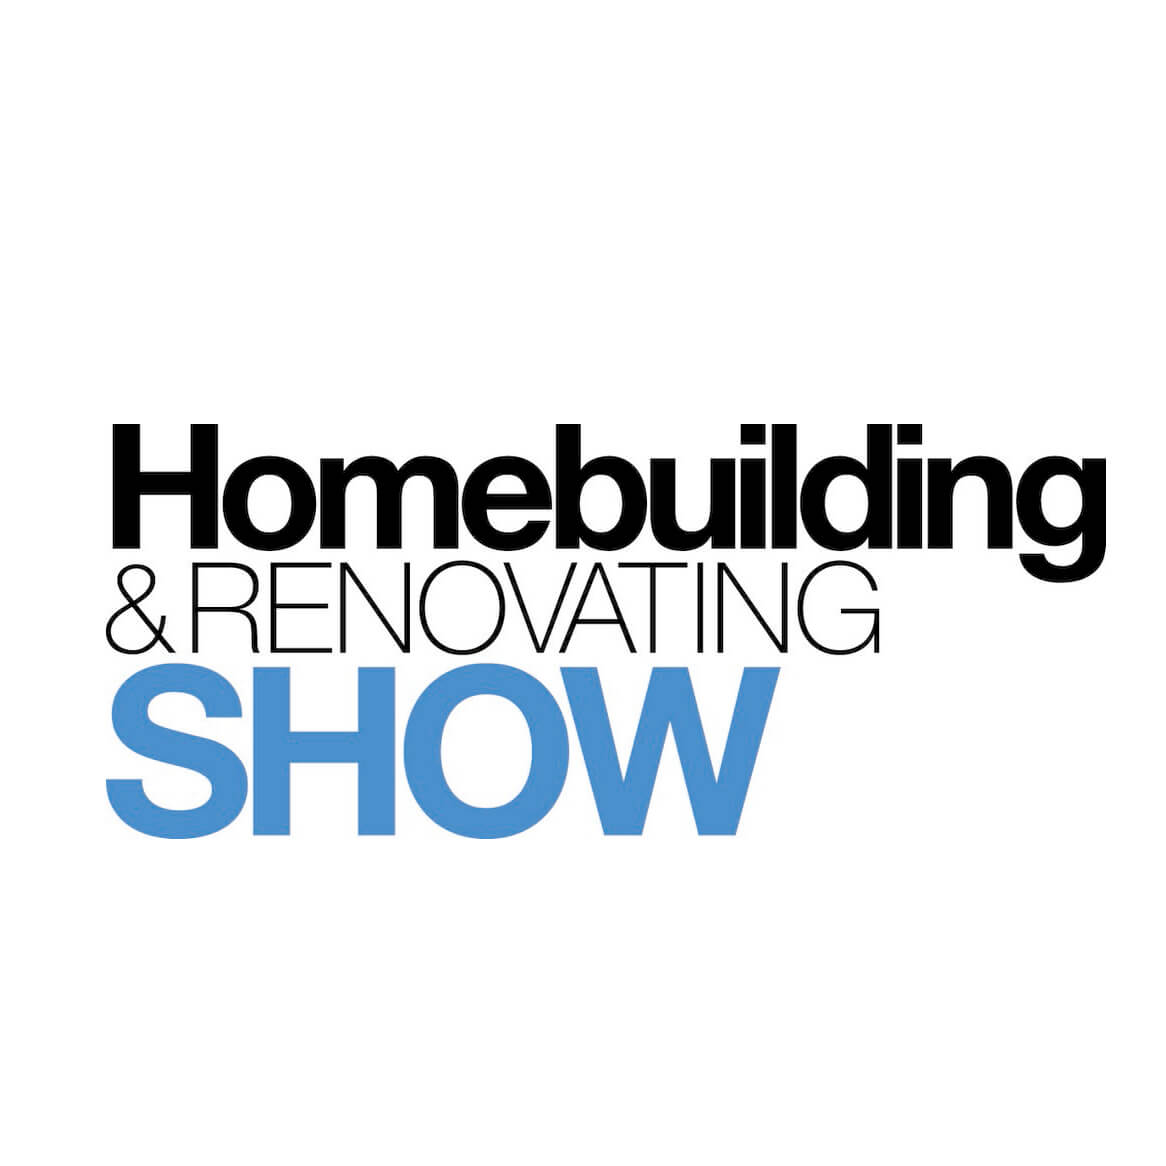 homebuilding-and-renovating-show-nec-hardwick-windows-blog-image.jpg